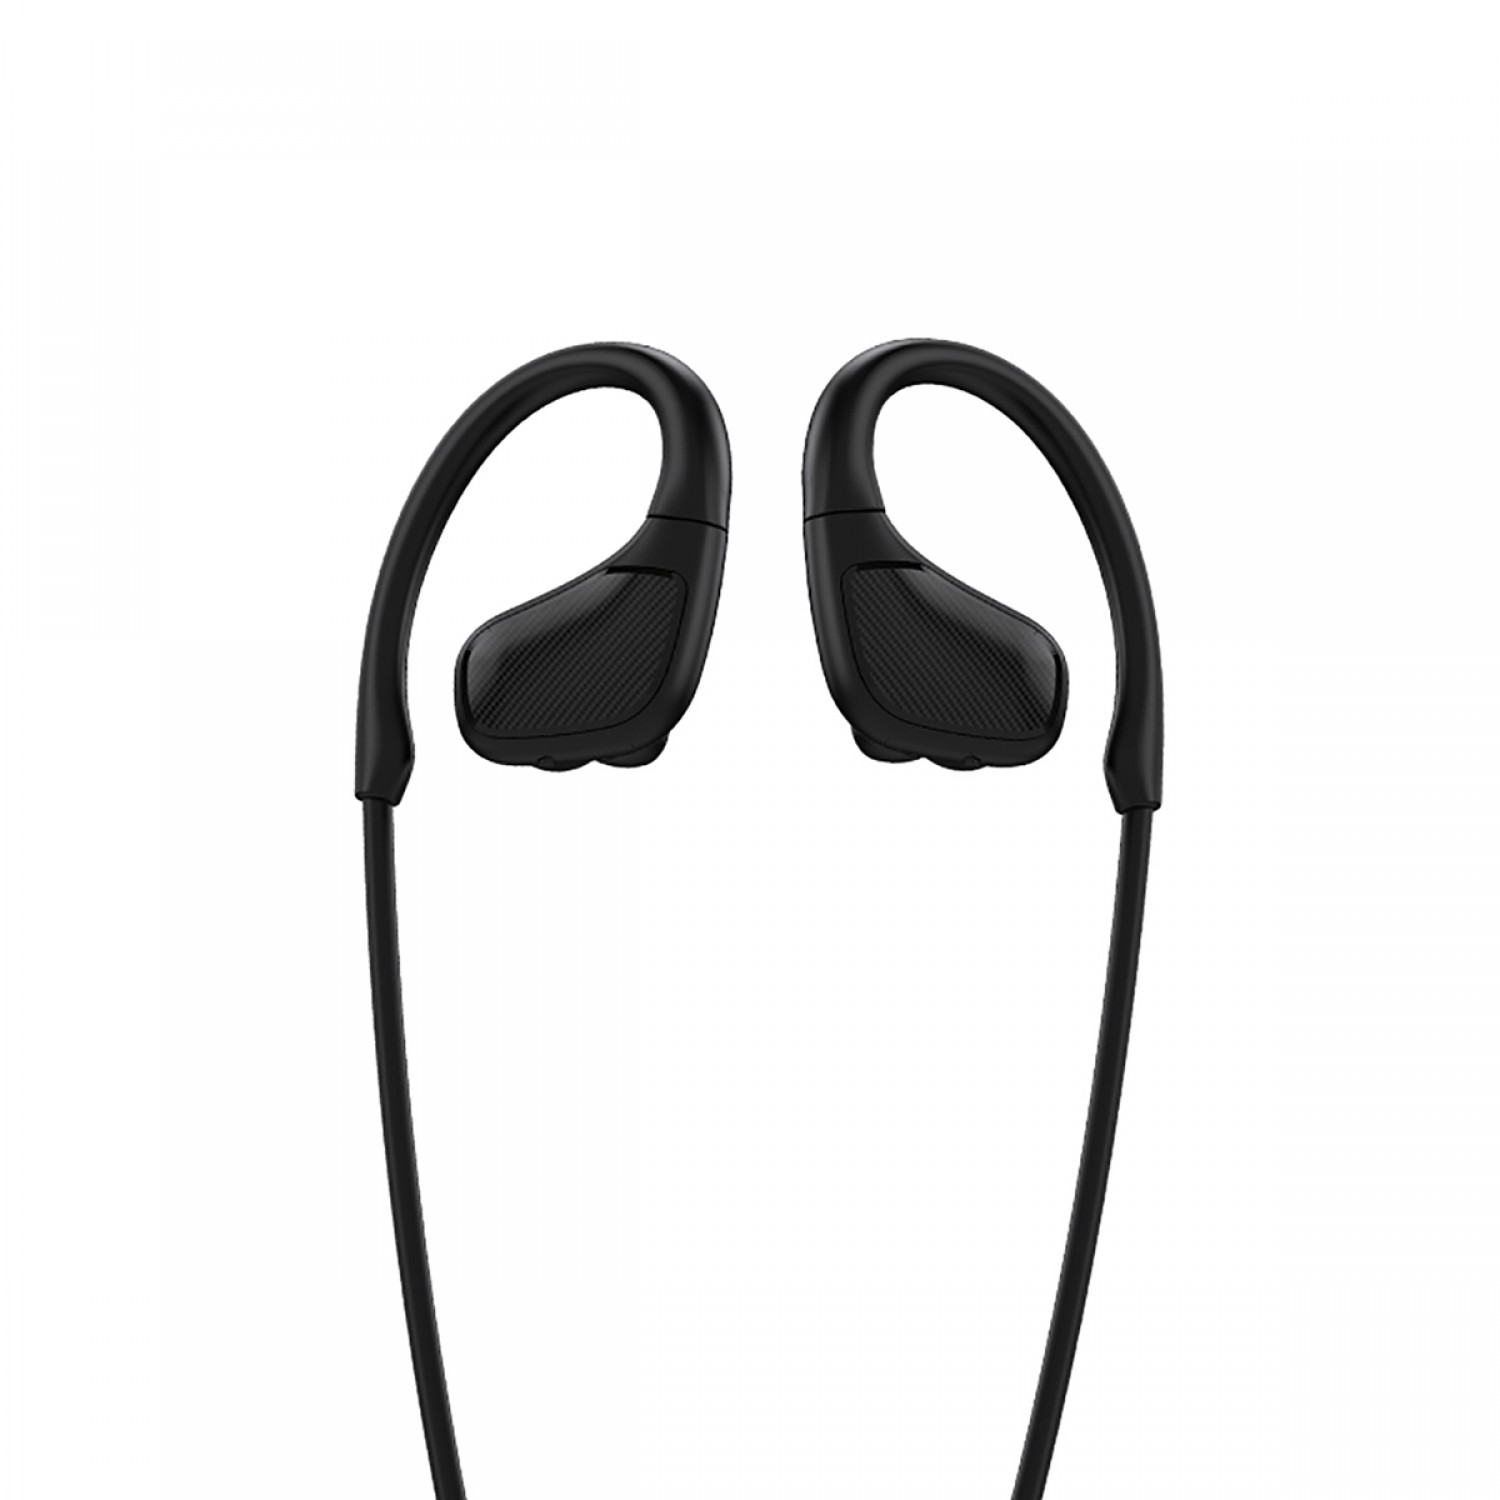 Promate Wireless Headphones, Premium Sweatproof Bluetooth v4.1 Sport Behind-Ear Running Earphones with HD Sound Quality, Noise Cancelling and Built-in Mic for Gym, Smartphones, iPod, Spirit Black